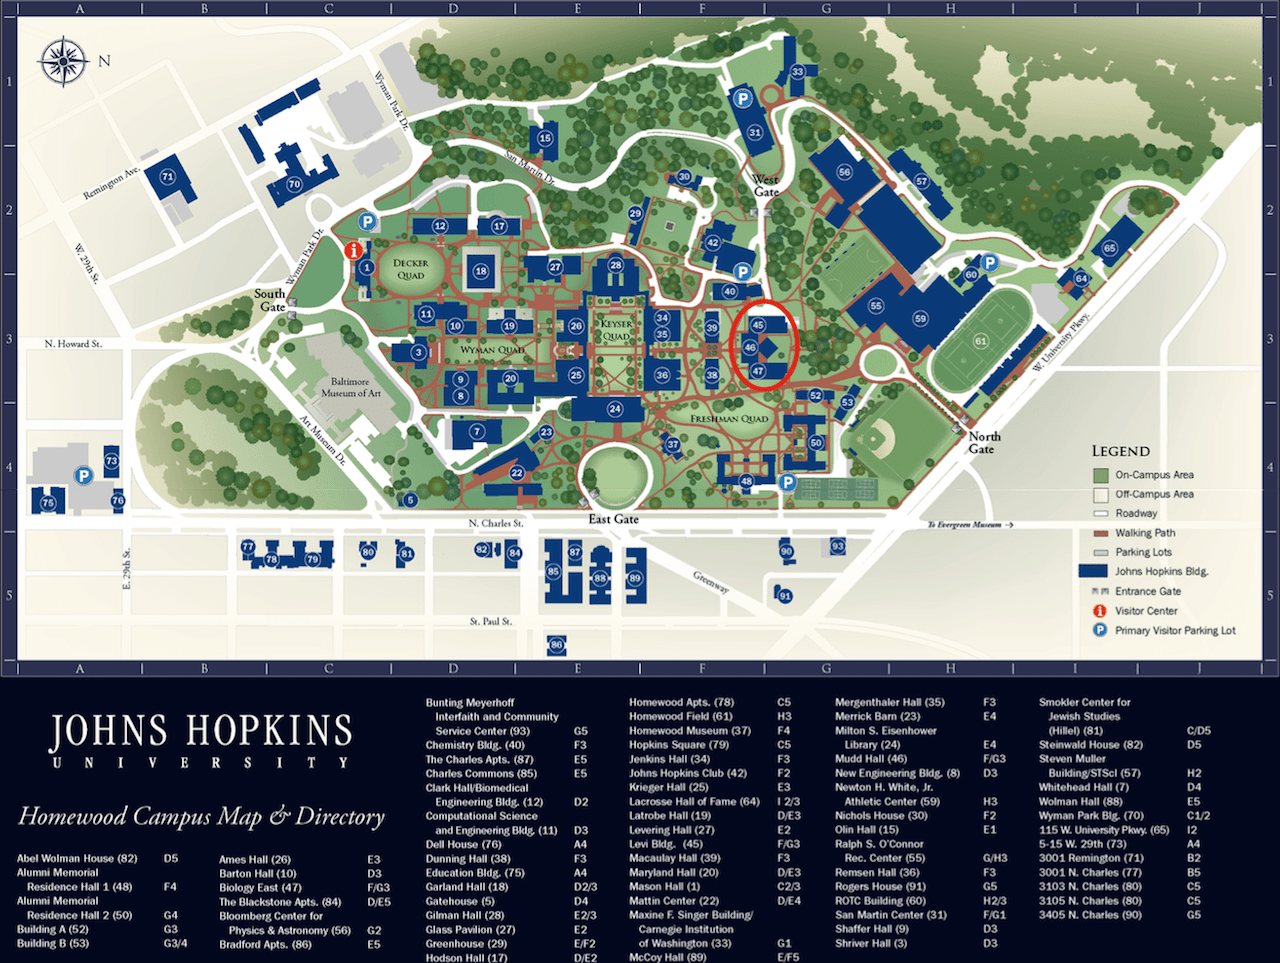 johns hopkins university campus map Contact Us Van Doren Lab Johns Hopkins University johns hopkins university campus map